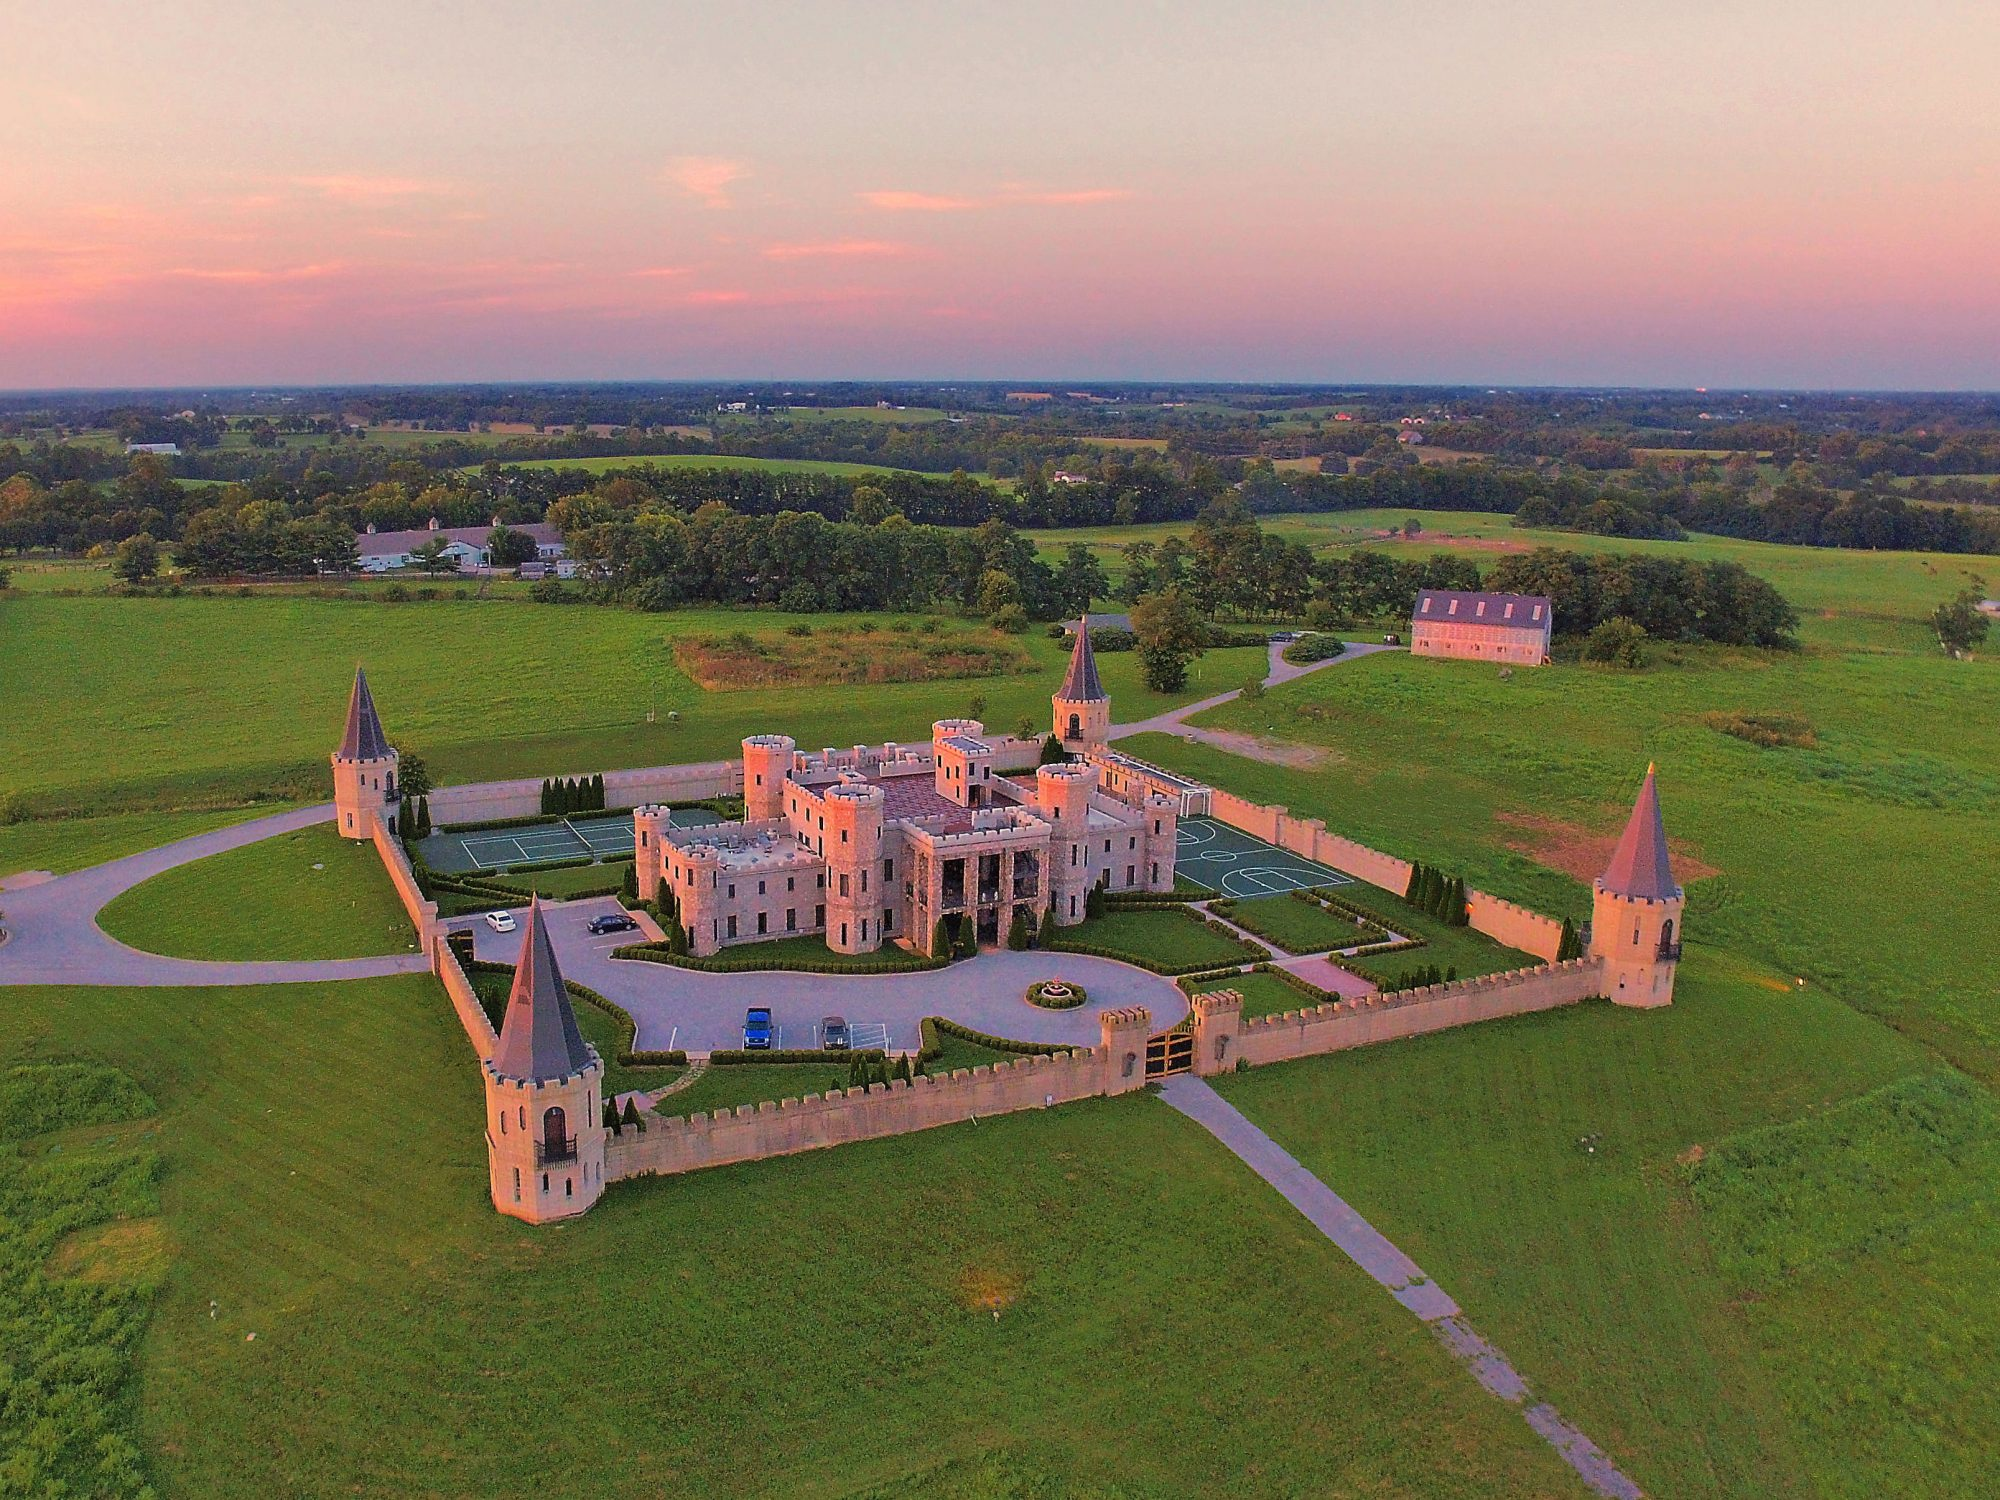 Book Your Next Girlfriends Getaway at This Medieval-Style Castle in Kentucky